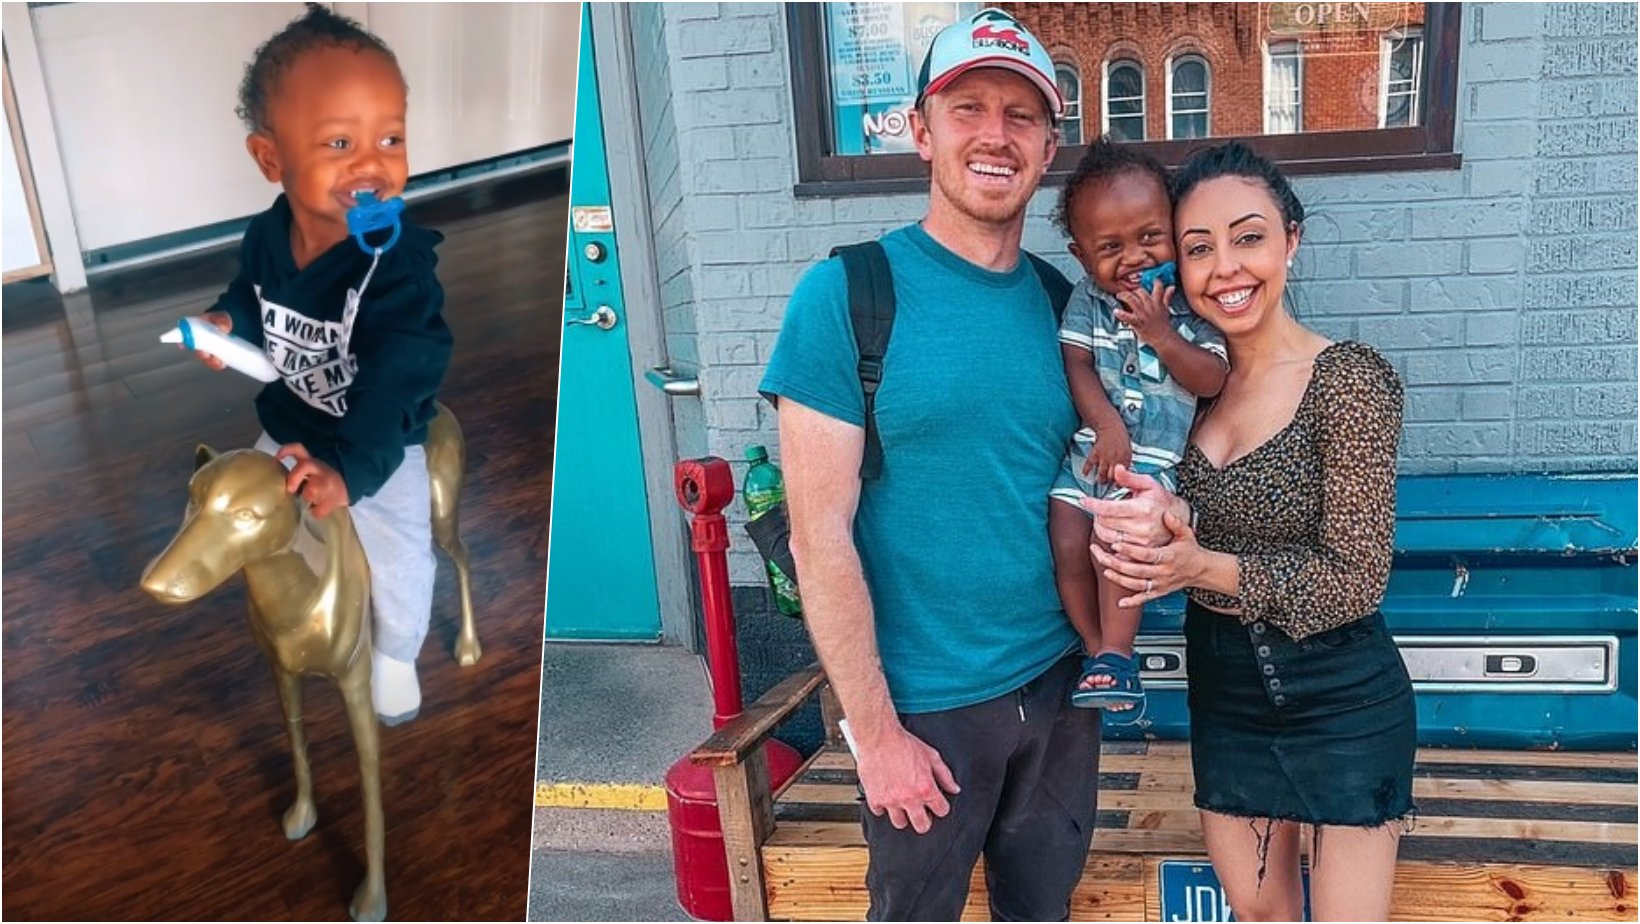 6 facebook cover.png?resize=1200,630 - Couple Claps Back At Critics Who Claim They Can't Take Care Of Their Adopted Baby's Hair Or Teach Him About Police Profiling